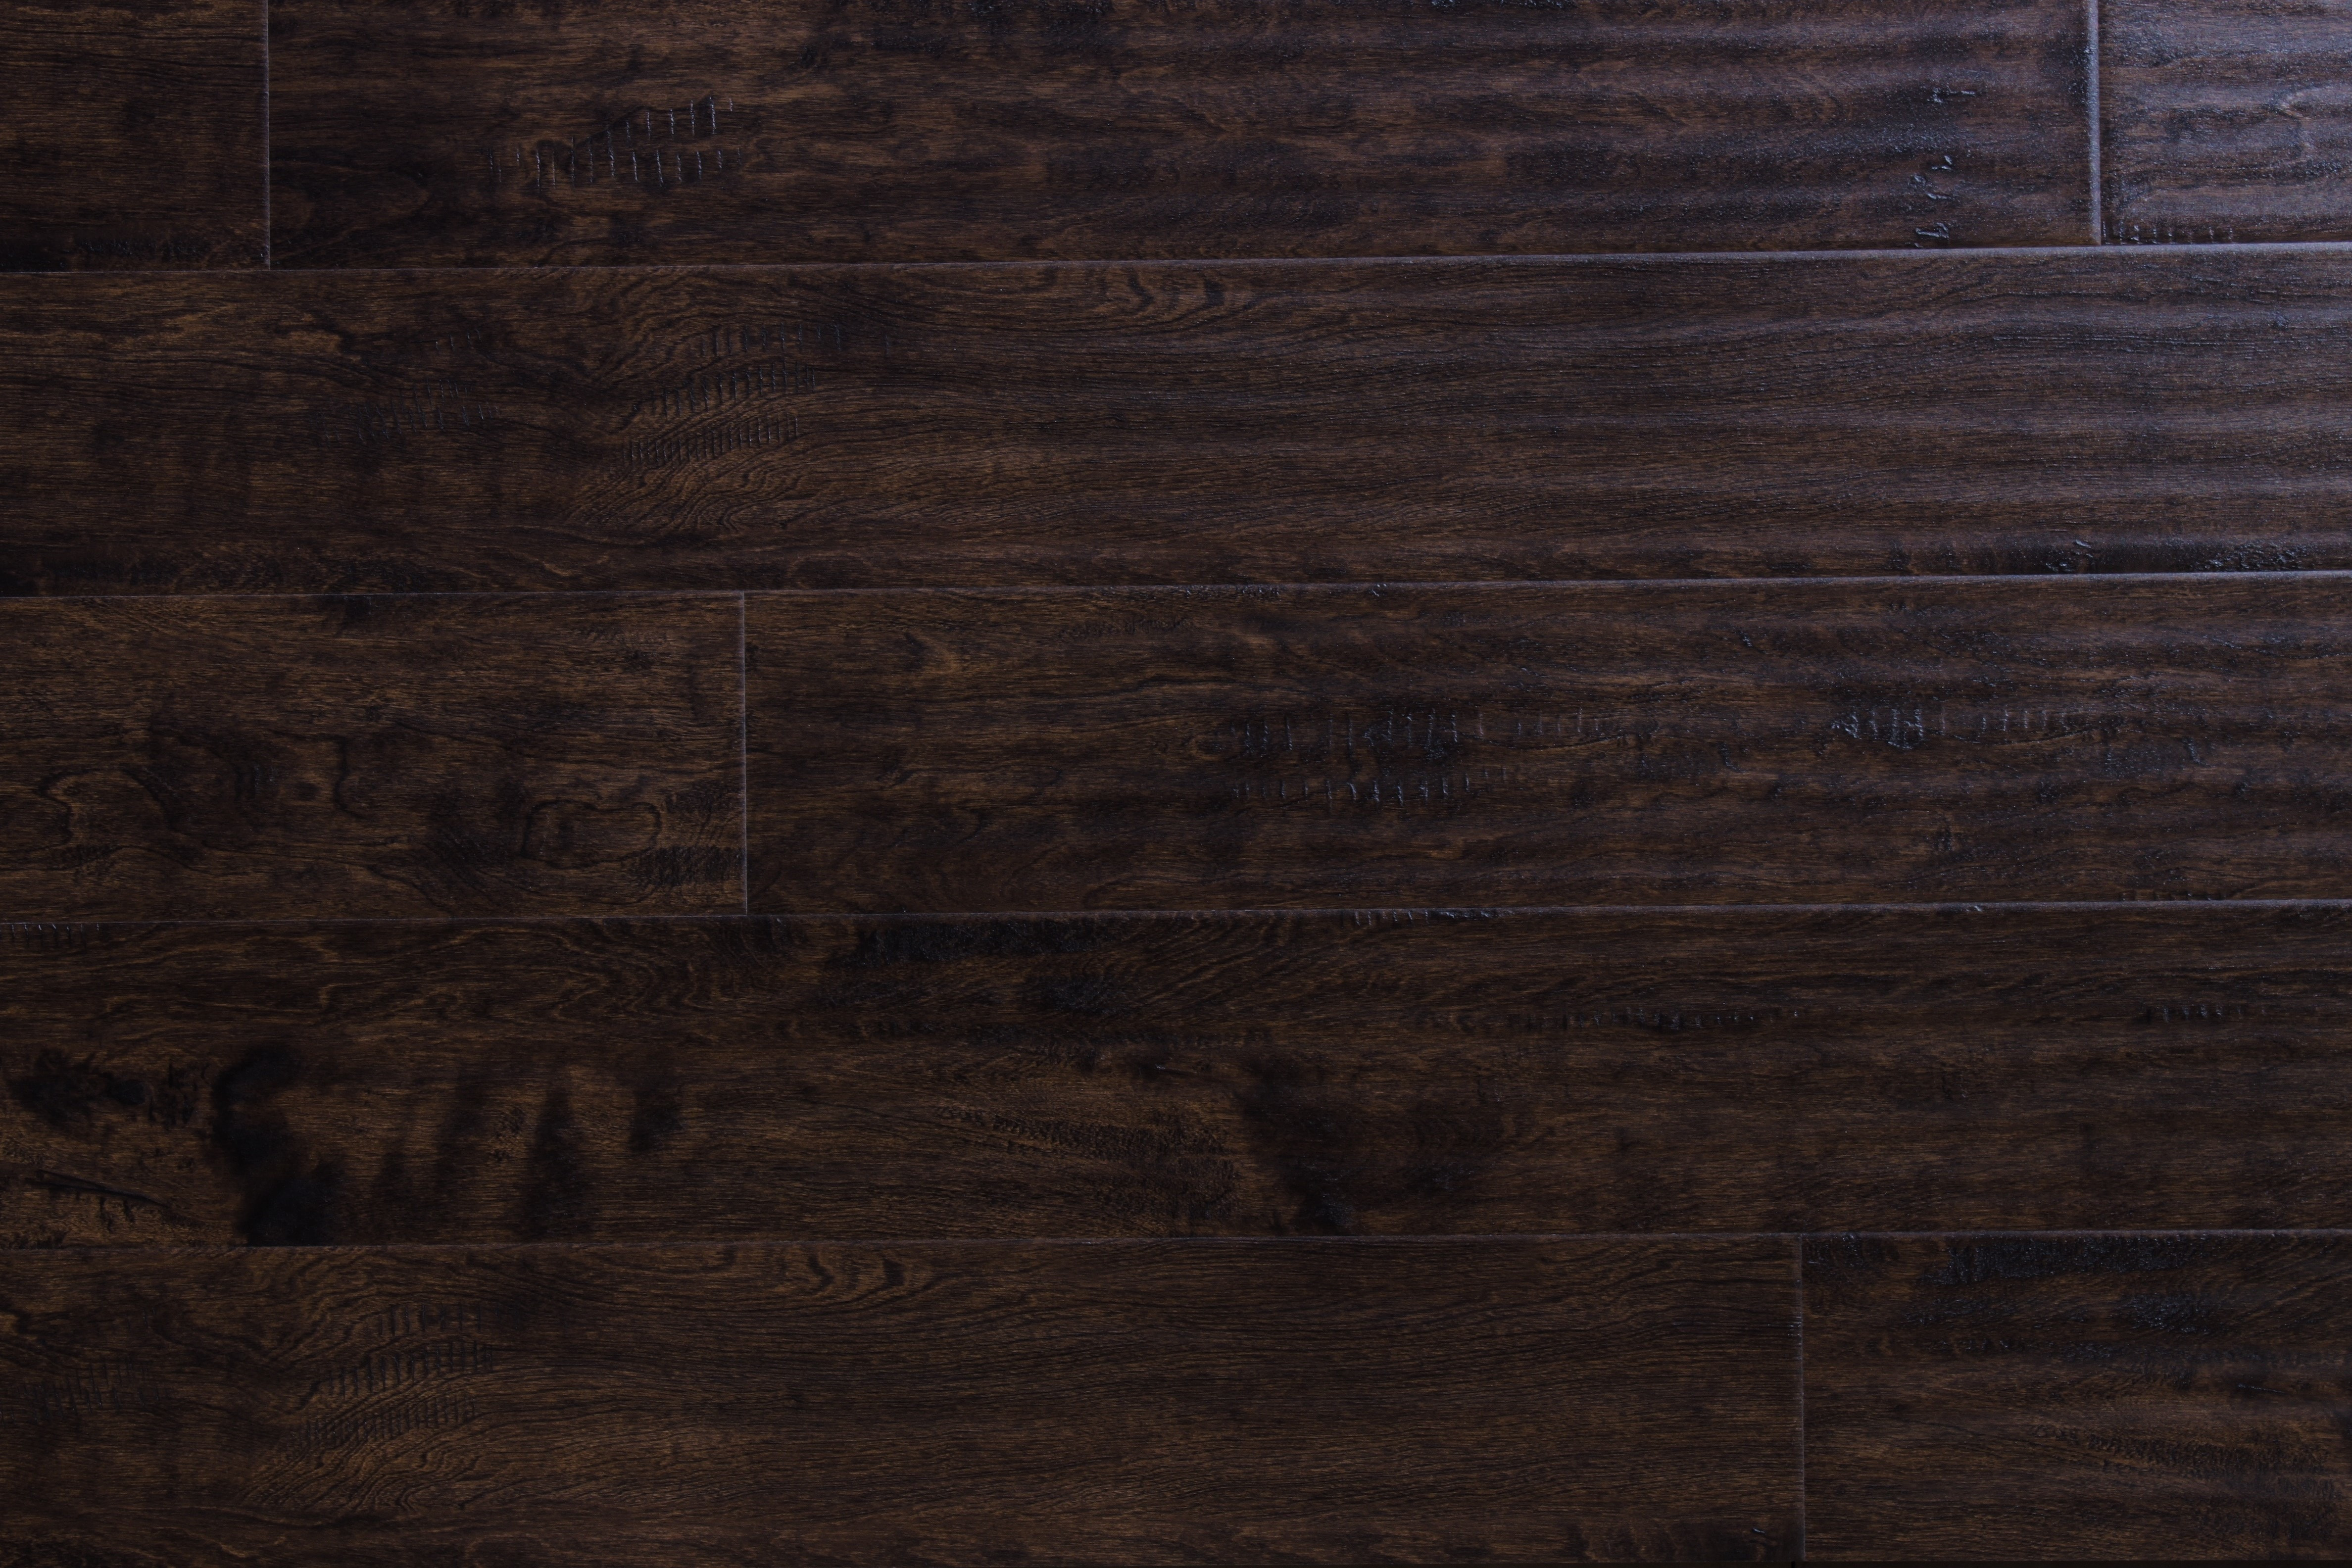 grey hardwood floors toronto of wood flooring free samples available at builddirecta with tailor multi gb 5874277bb8d3c